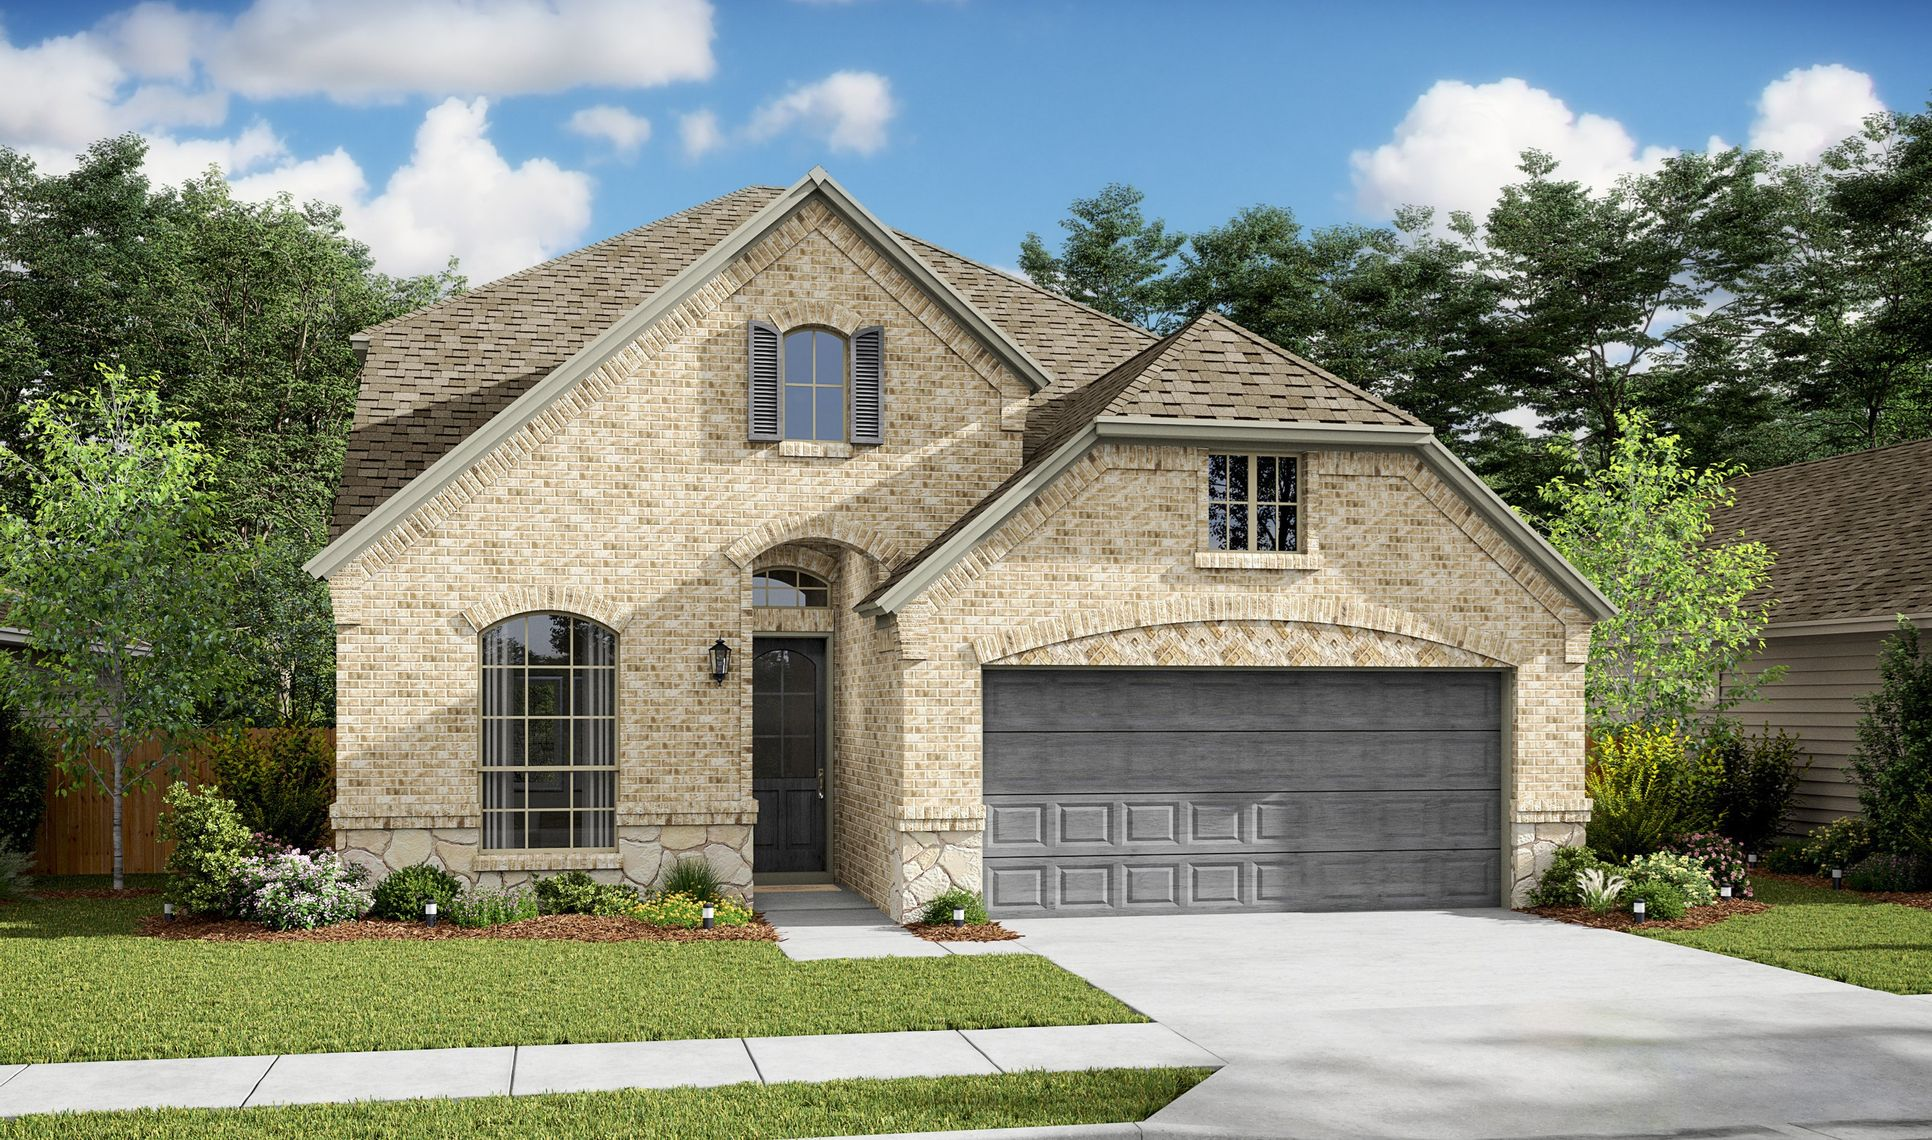 Exterior:Waverly VIII - C - Shown with stone